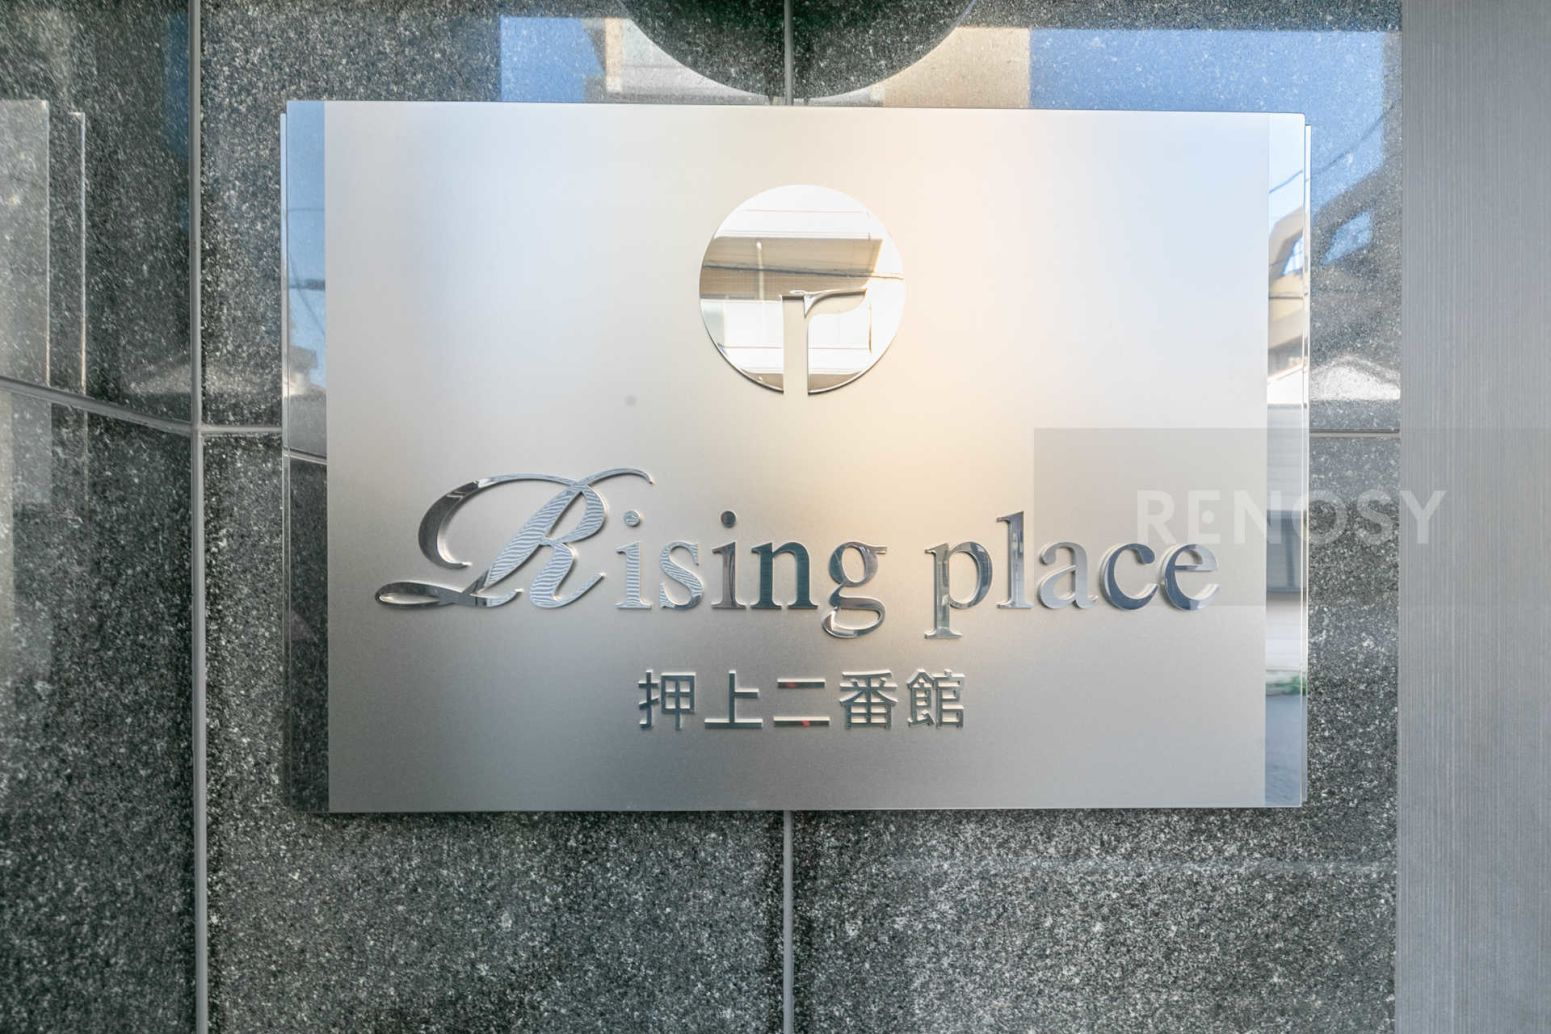 Rising place 押上二番館